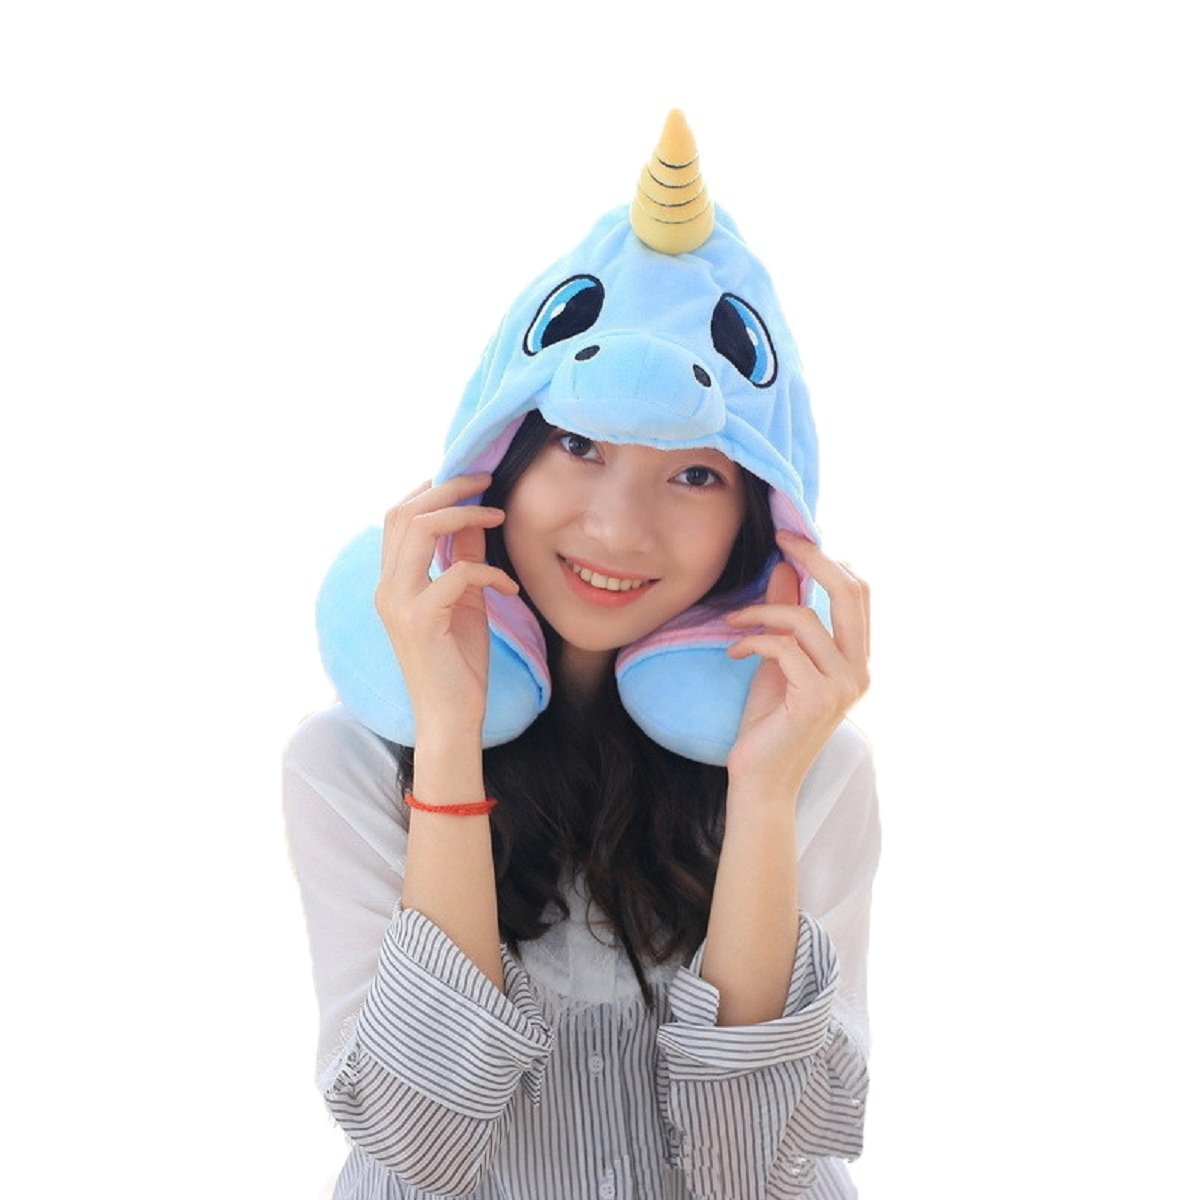 DPIST Unicorn Hooded Animal Travel Neck Pillow Polyester Neck Pillow Support Cushion Unicorn Hoodie Funny Gifts for Children and Women Shanghai Musha Trade Co. Ltd.